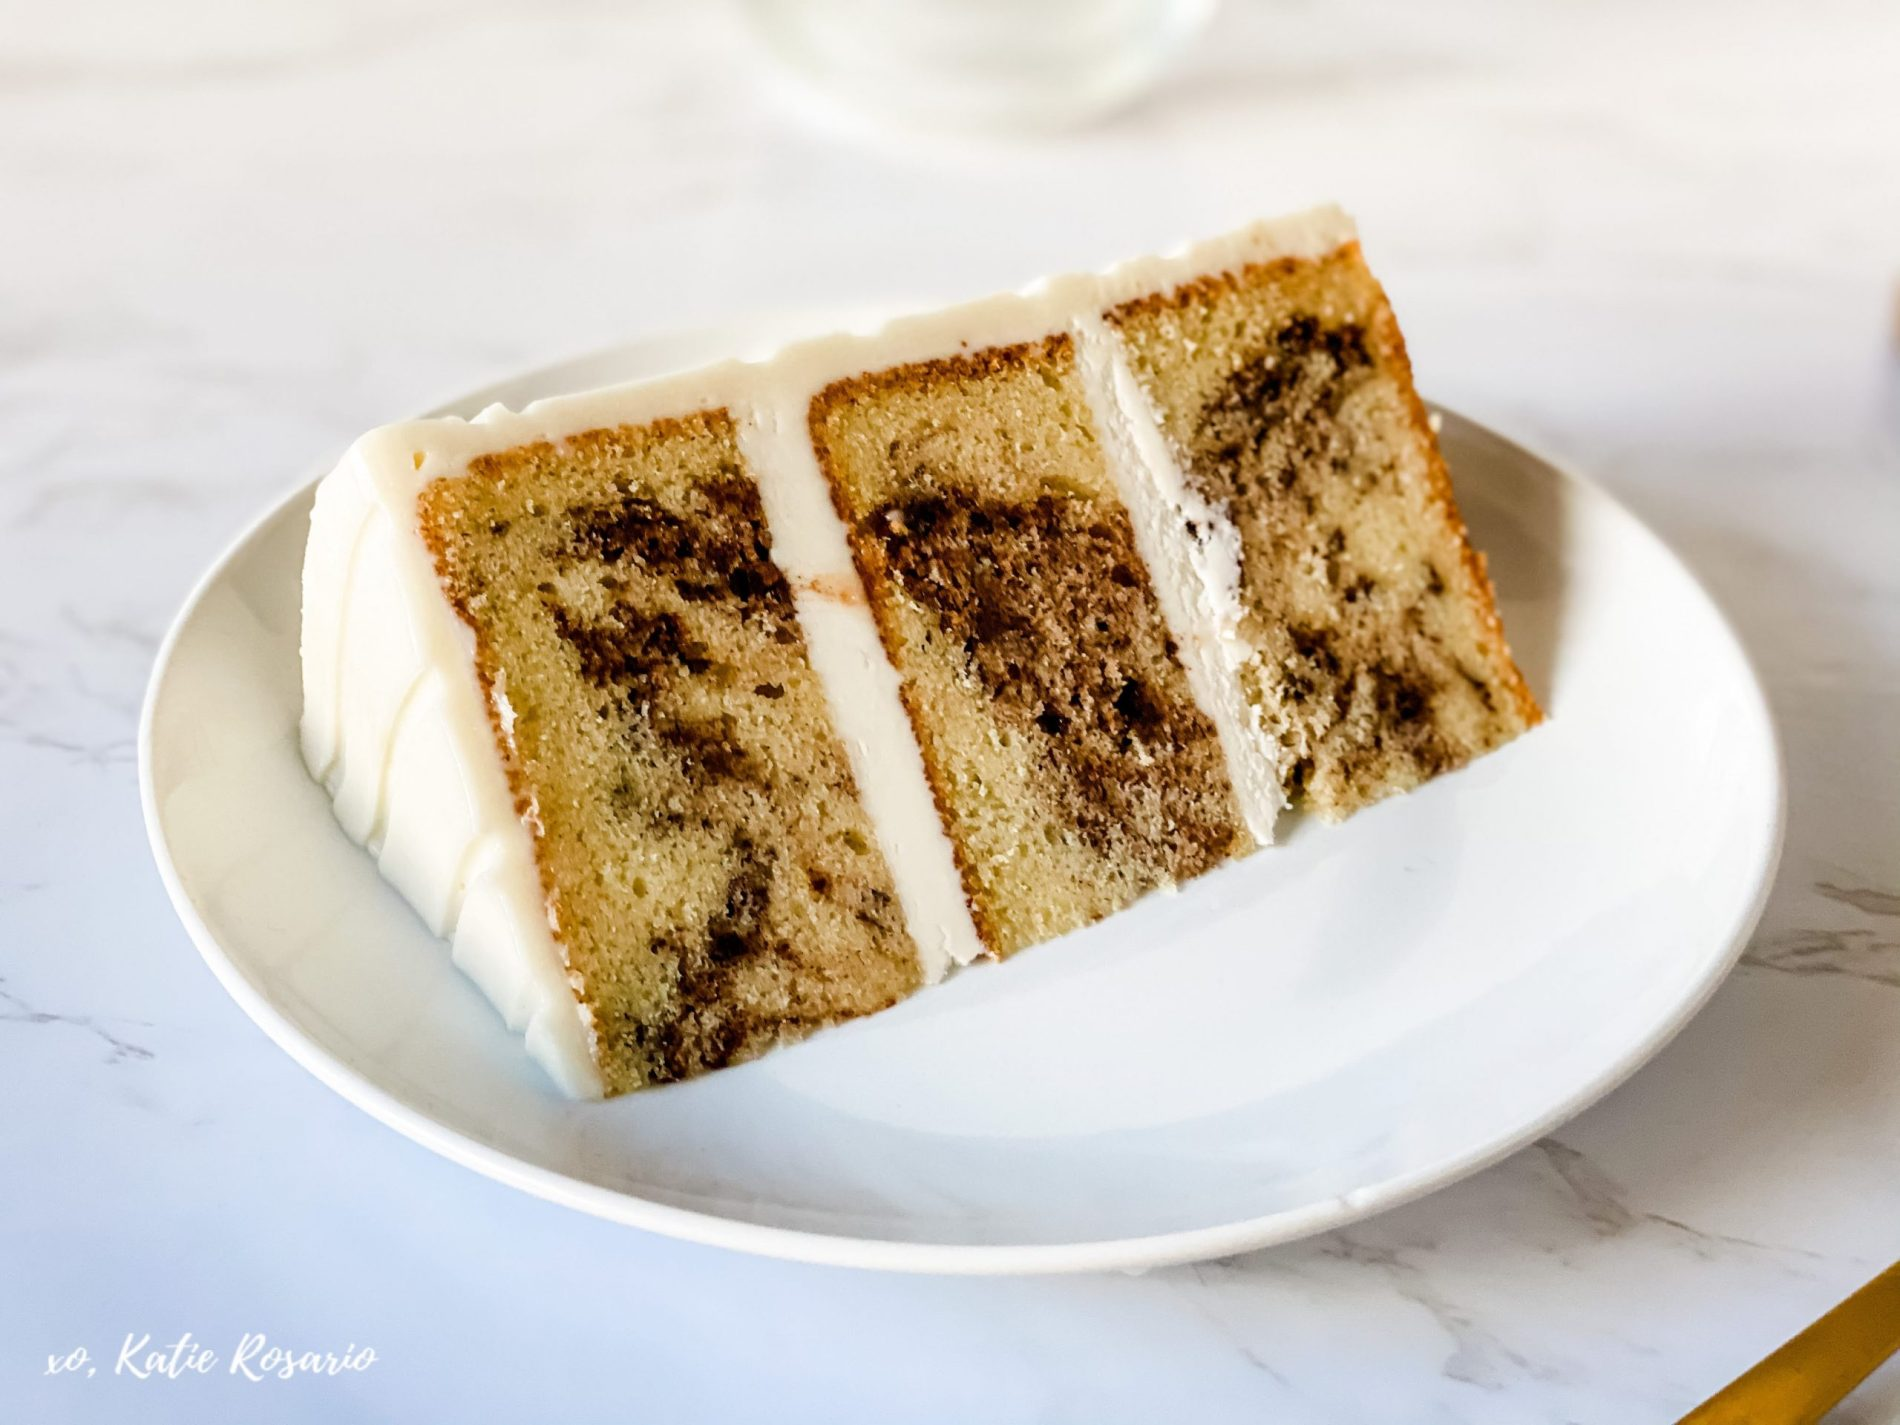 Looking for an ooey-gooey Christmas cake that all your family and friends will love? This Cinnamon swirl cake is made with light, and fluffy vanilla cake with cinnamon filling swirled inside topped with cream cheese buttercream. The holidays may look different this year, but this Cinnamon Swirl Cake will bring everyone together. #xokatierosario #cakedecoratingtips #cinnamonswirlcake #cinnamonroll #christmascake